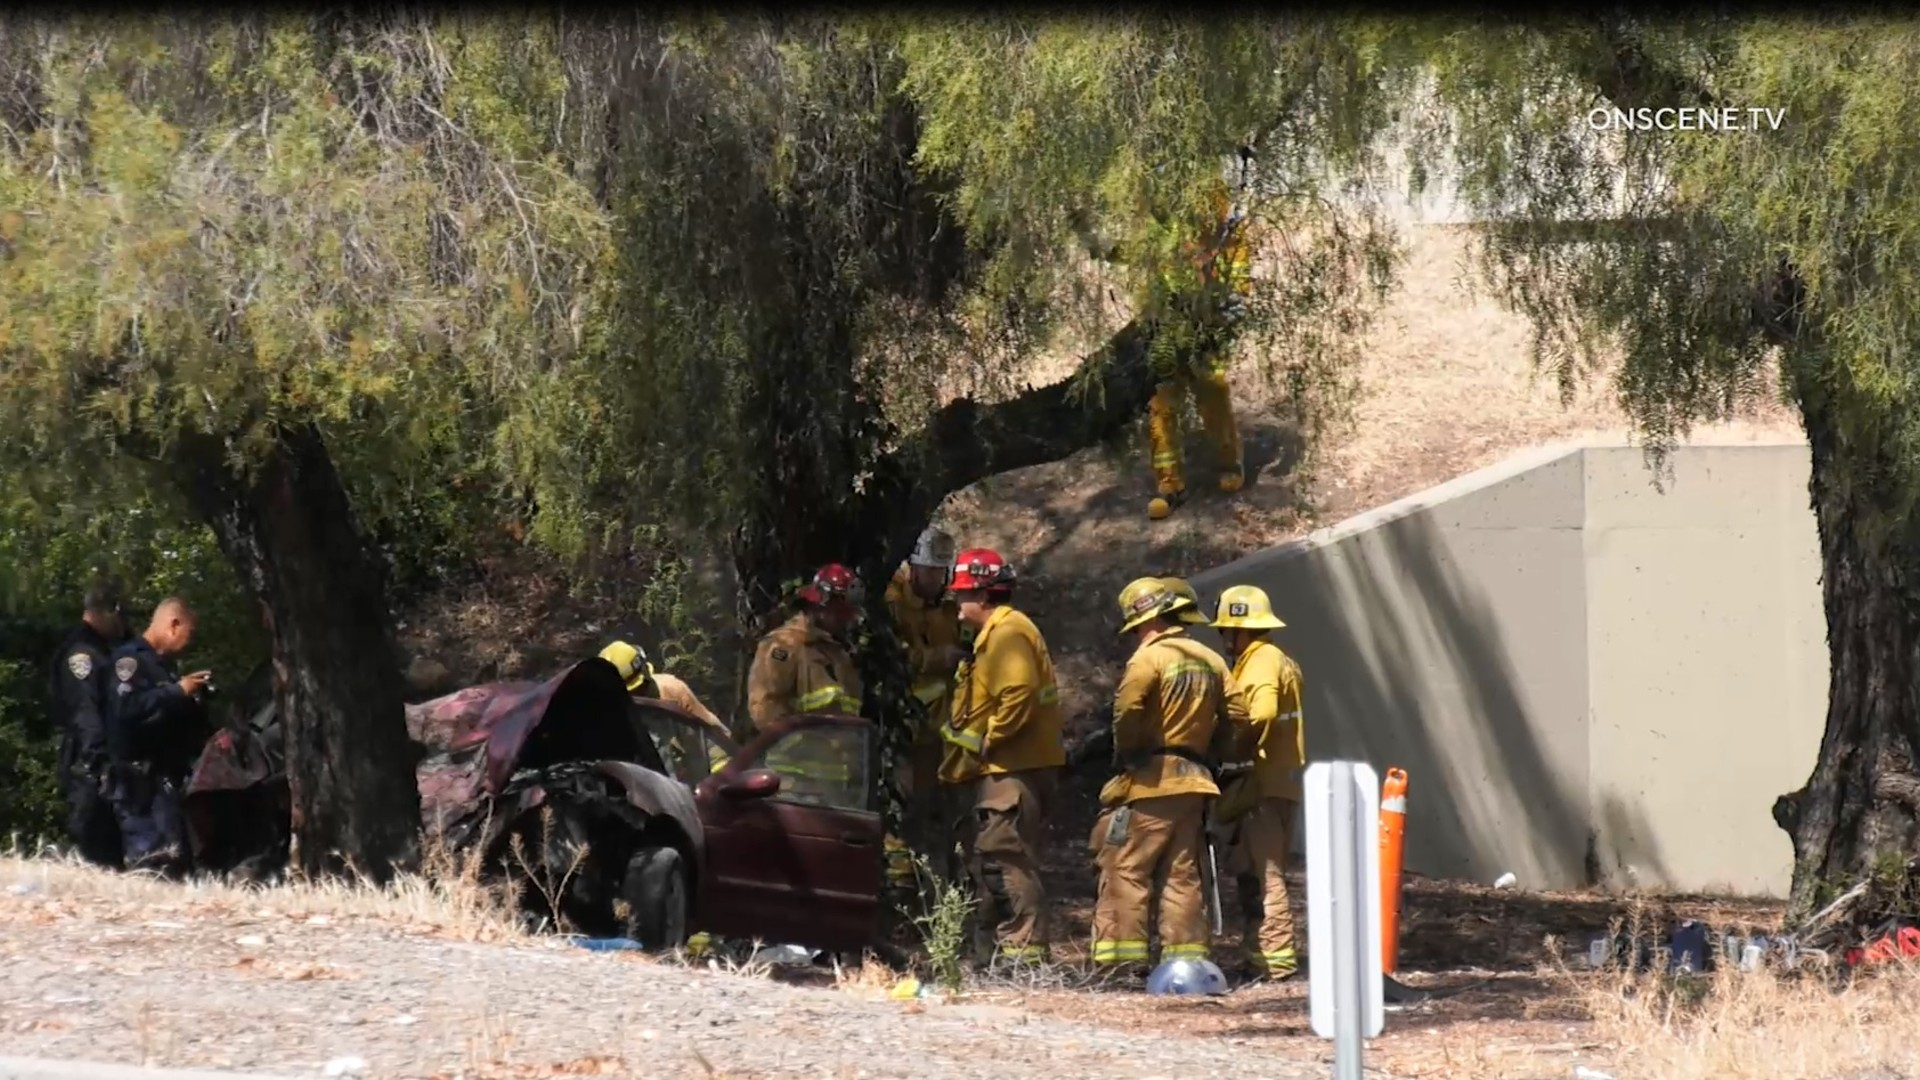 Two people died in a crash on the 5 Freeway at Paramount Blvd. in Downey on May 23, 2020. (OnScene)